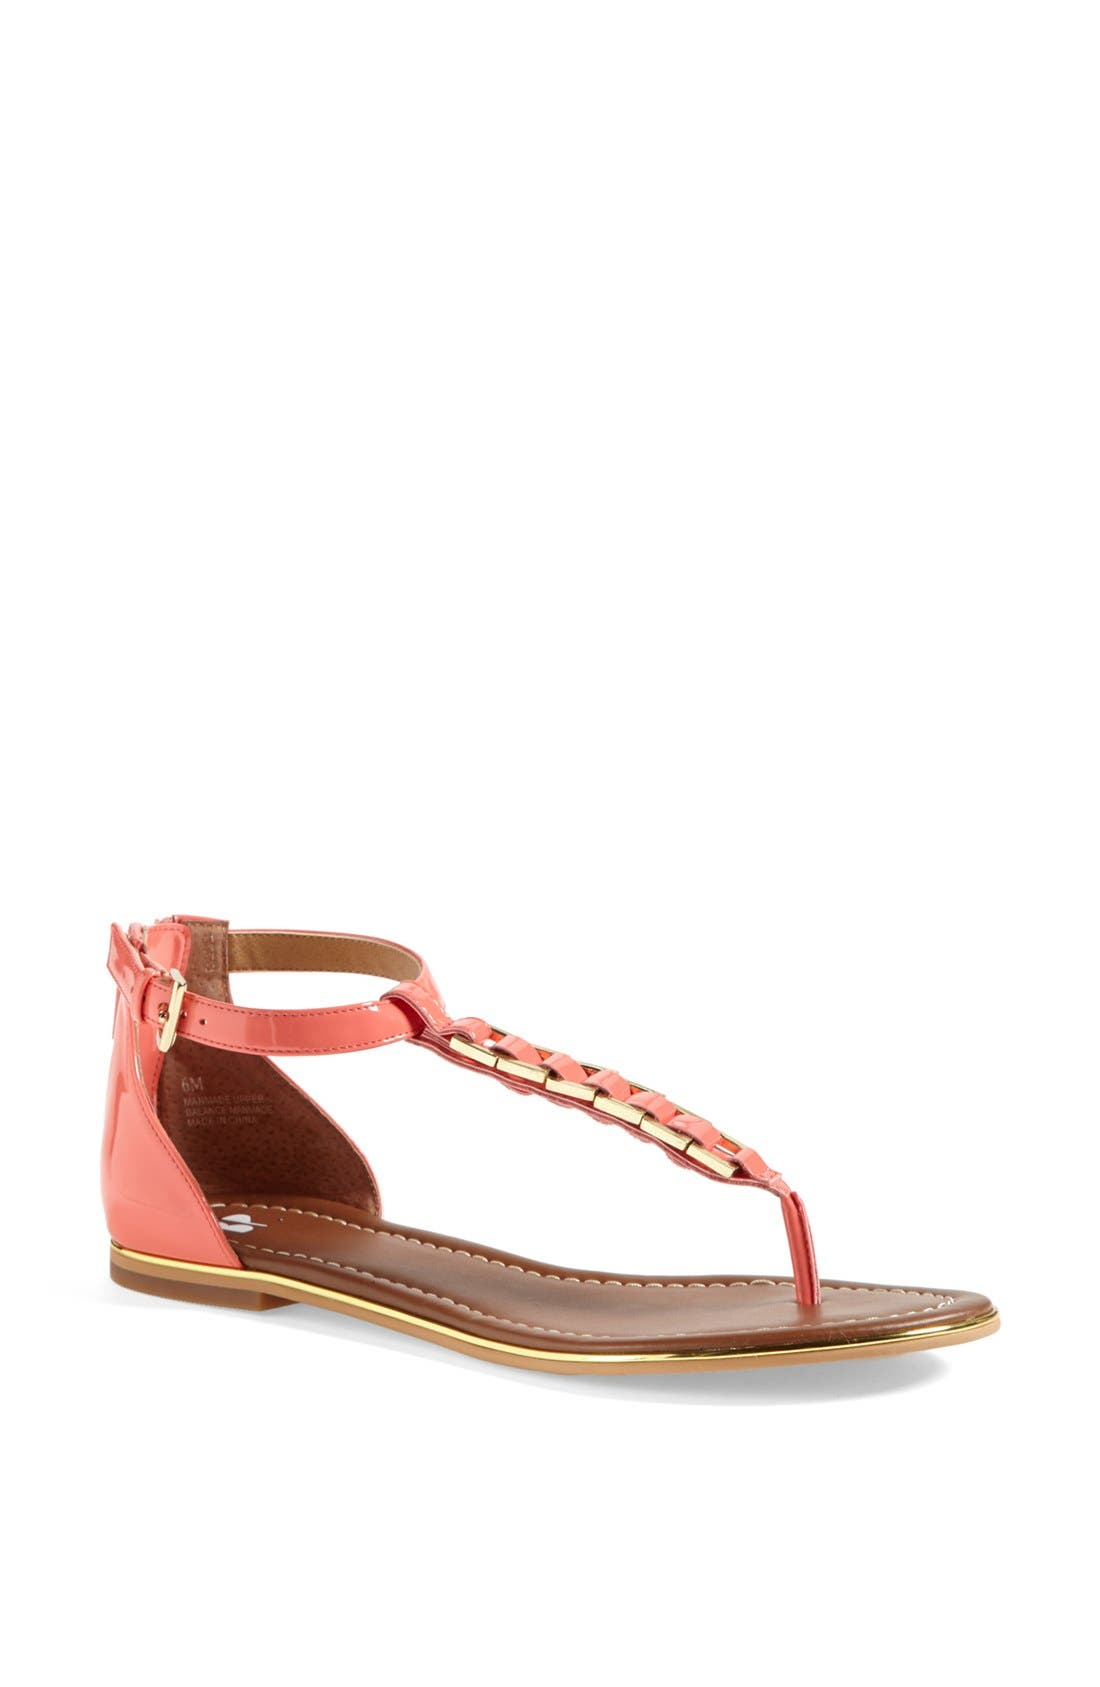 'Bonsai' Sandal,                             Main thumbnail 1, color,                             Coral Patent